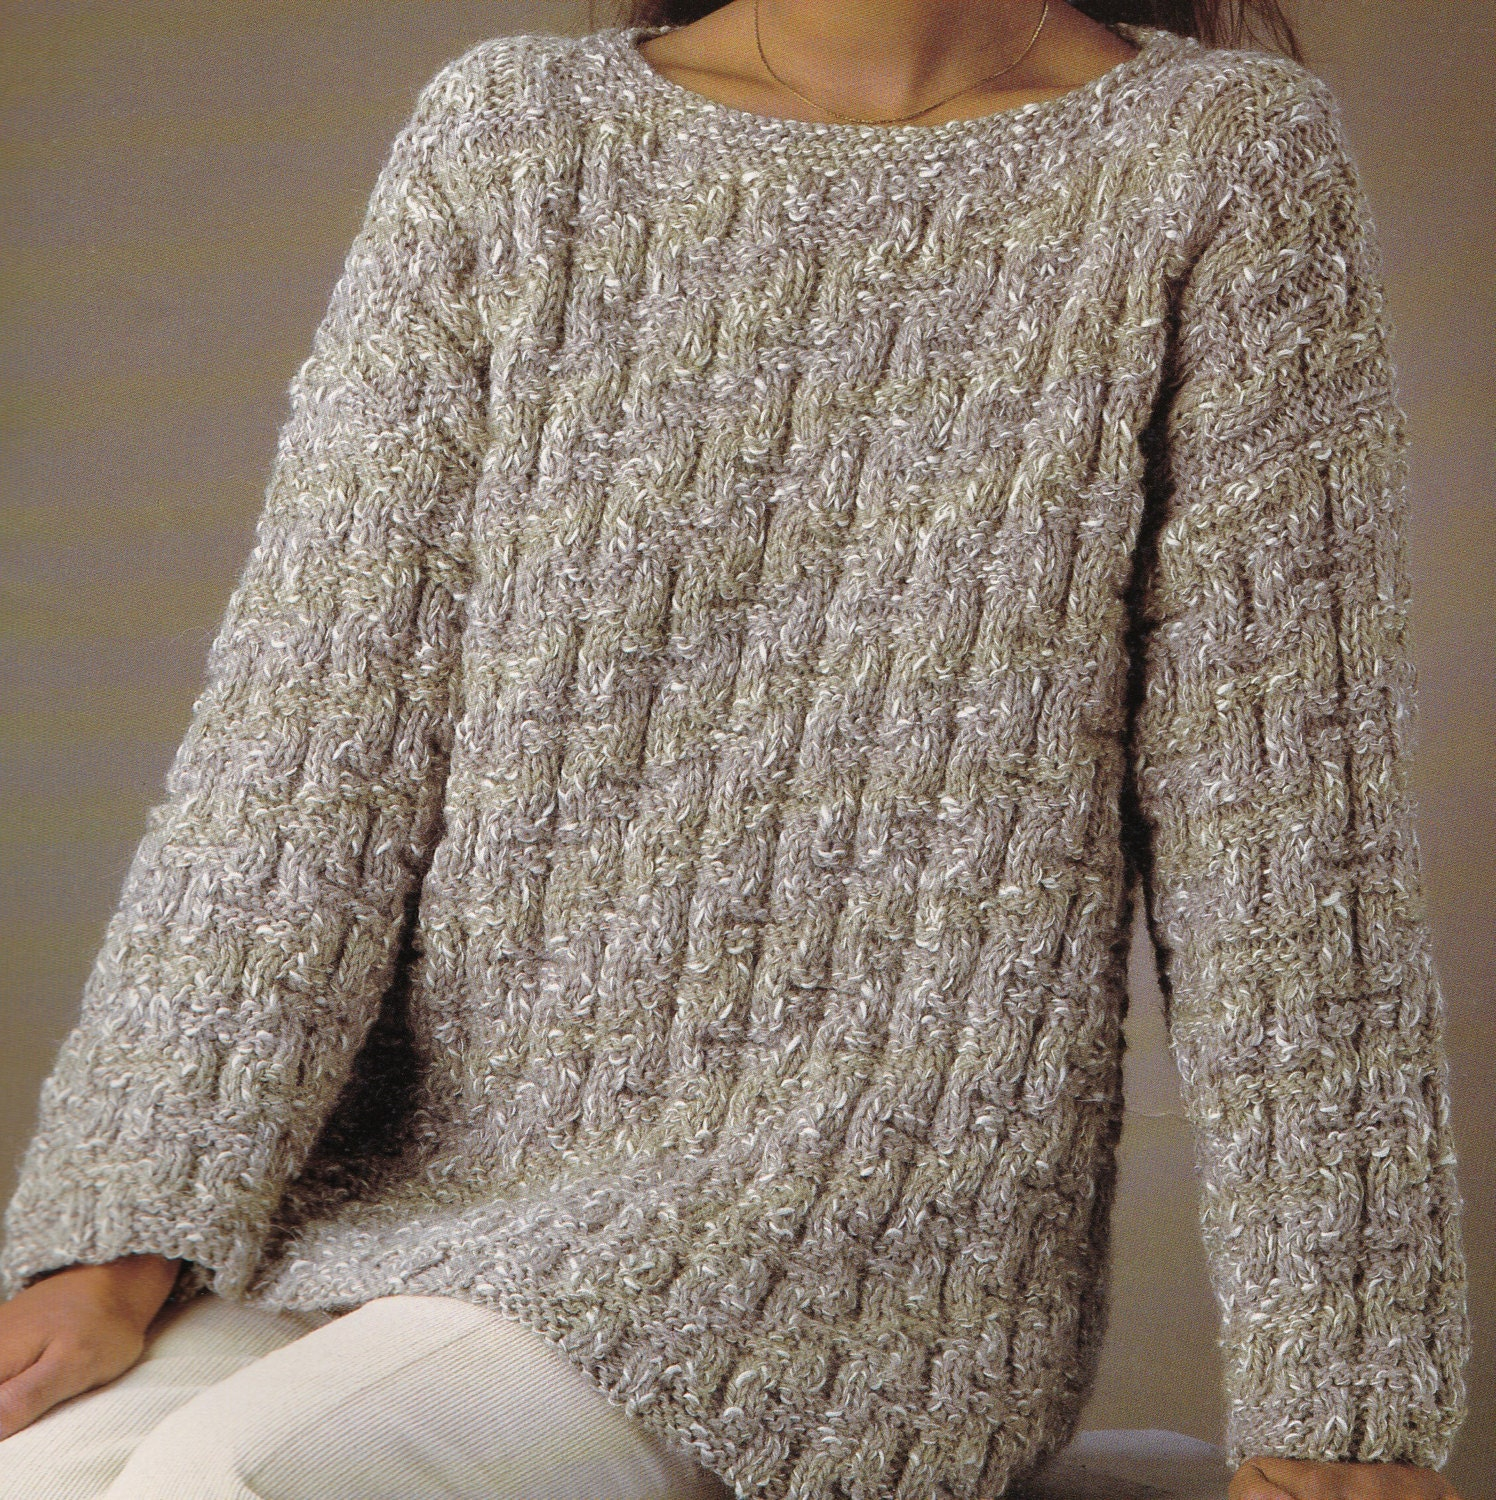 Chunky Knit Jumper Pattern Free : Vintage Knitting Pattern Instructions to Make Ladies Chunky Jumper in 6 Sizes...